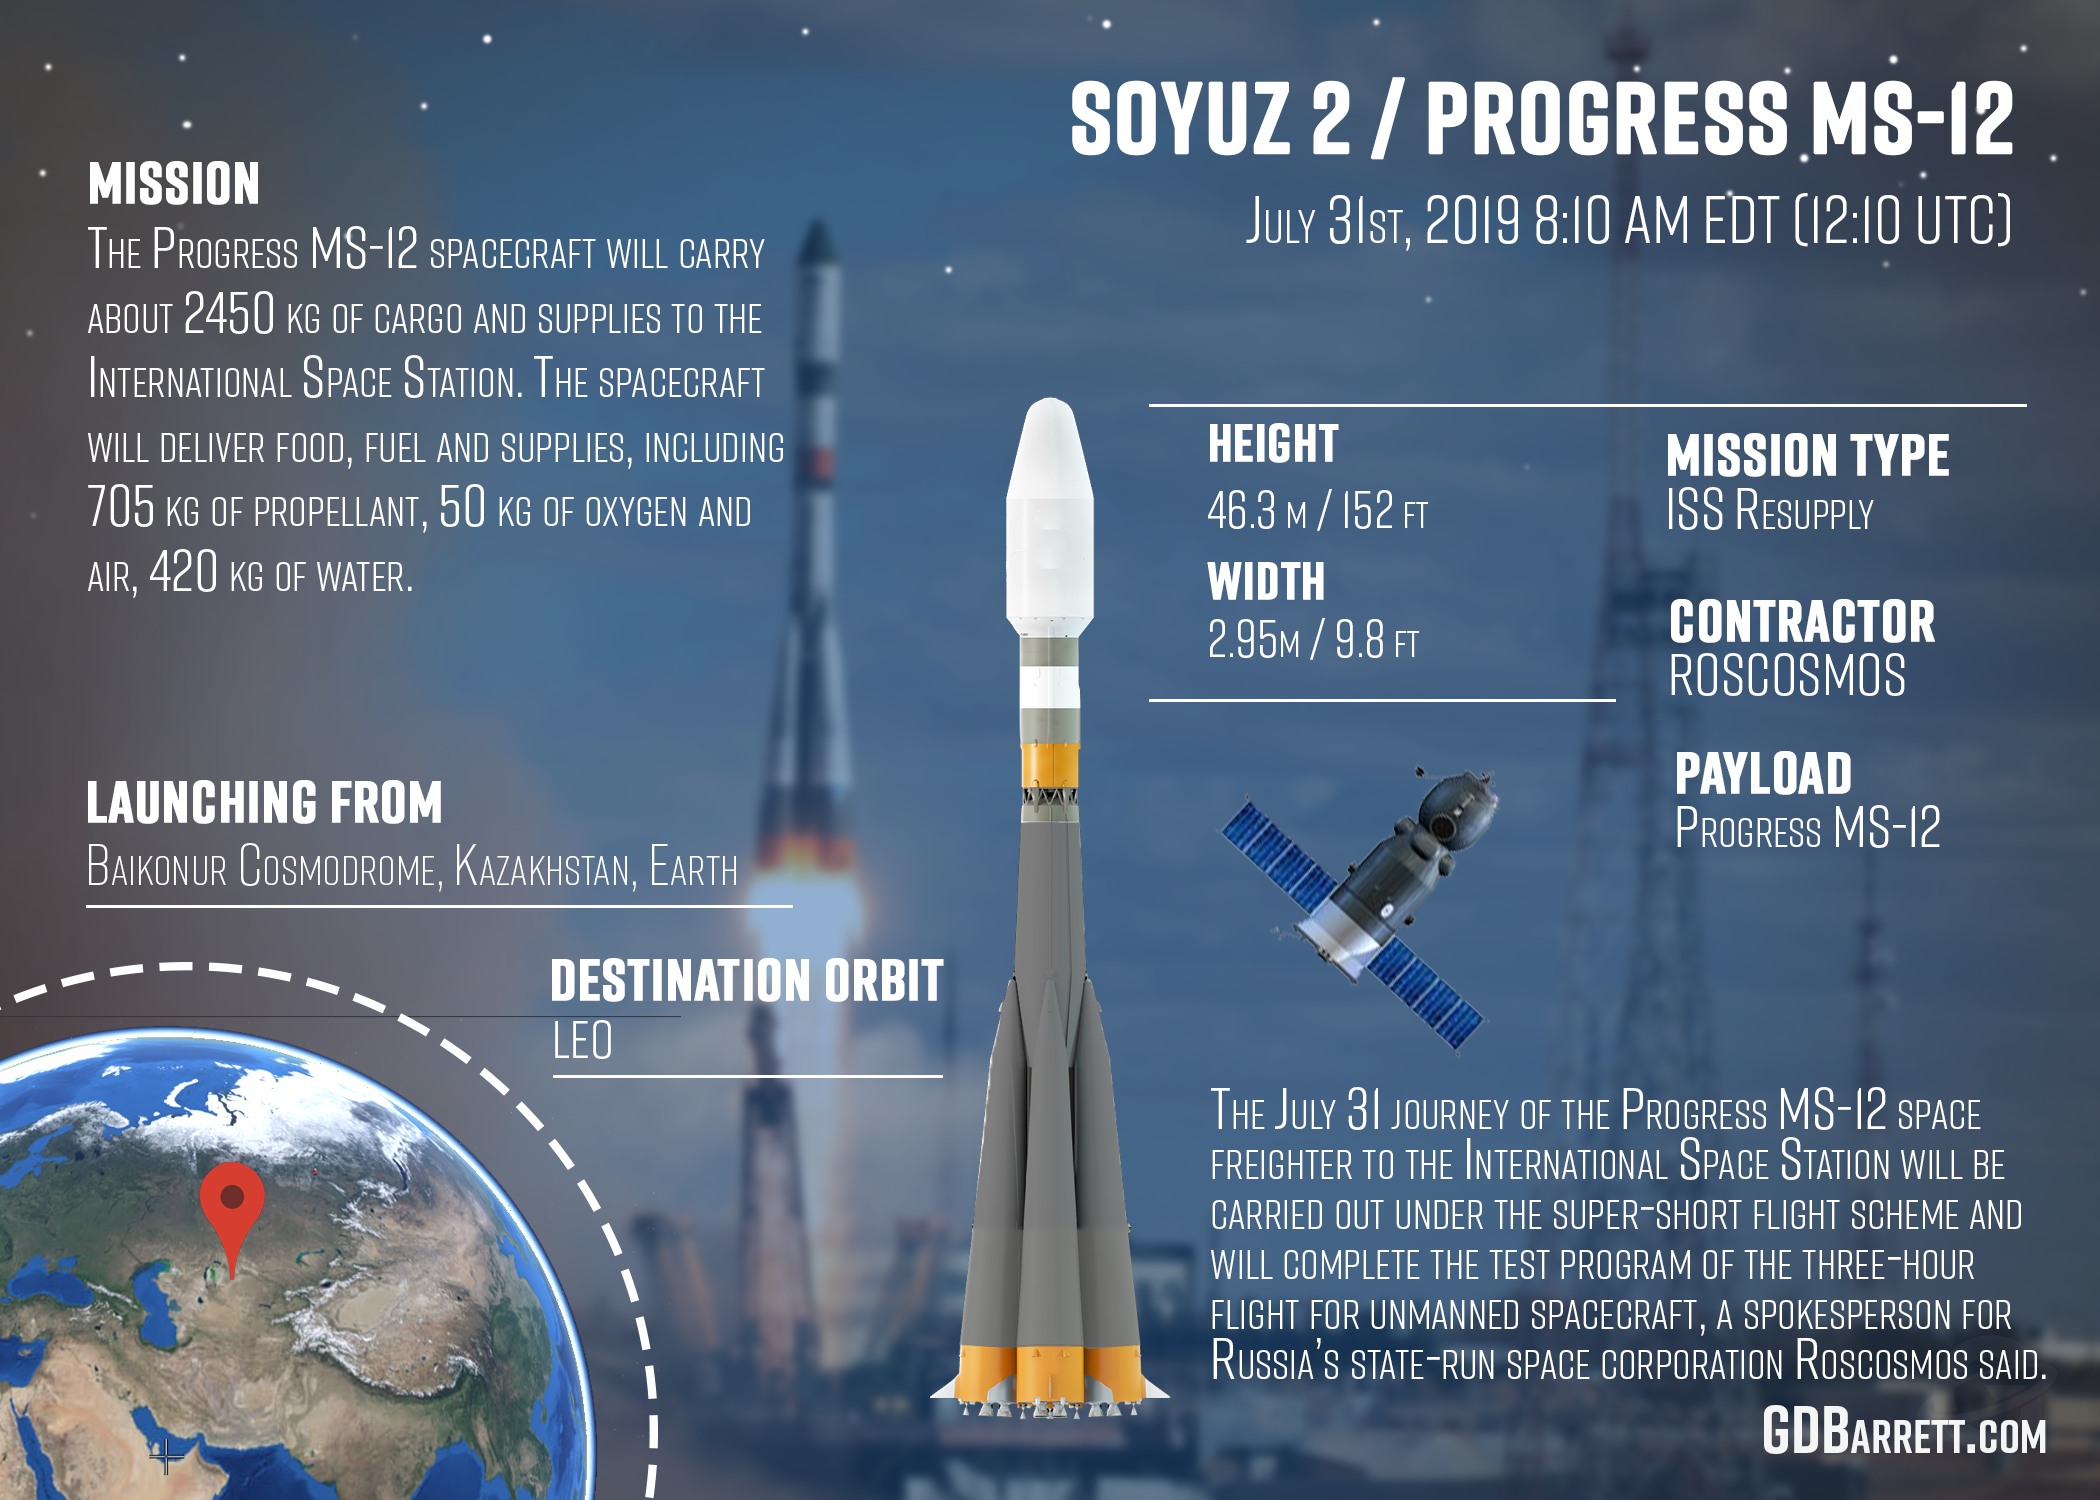 Soyuz / Progress MS-12